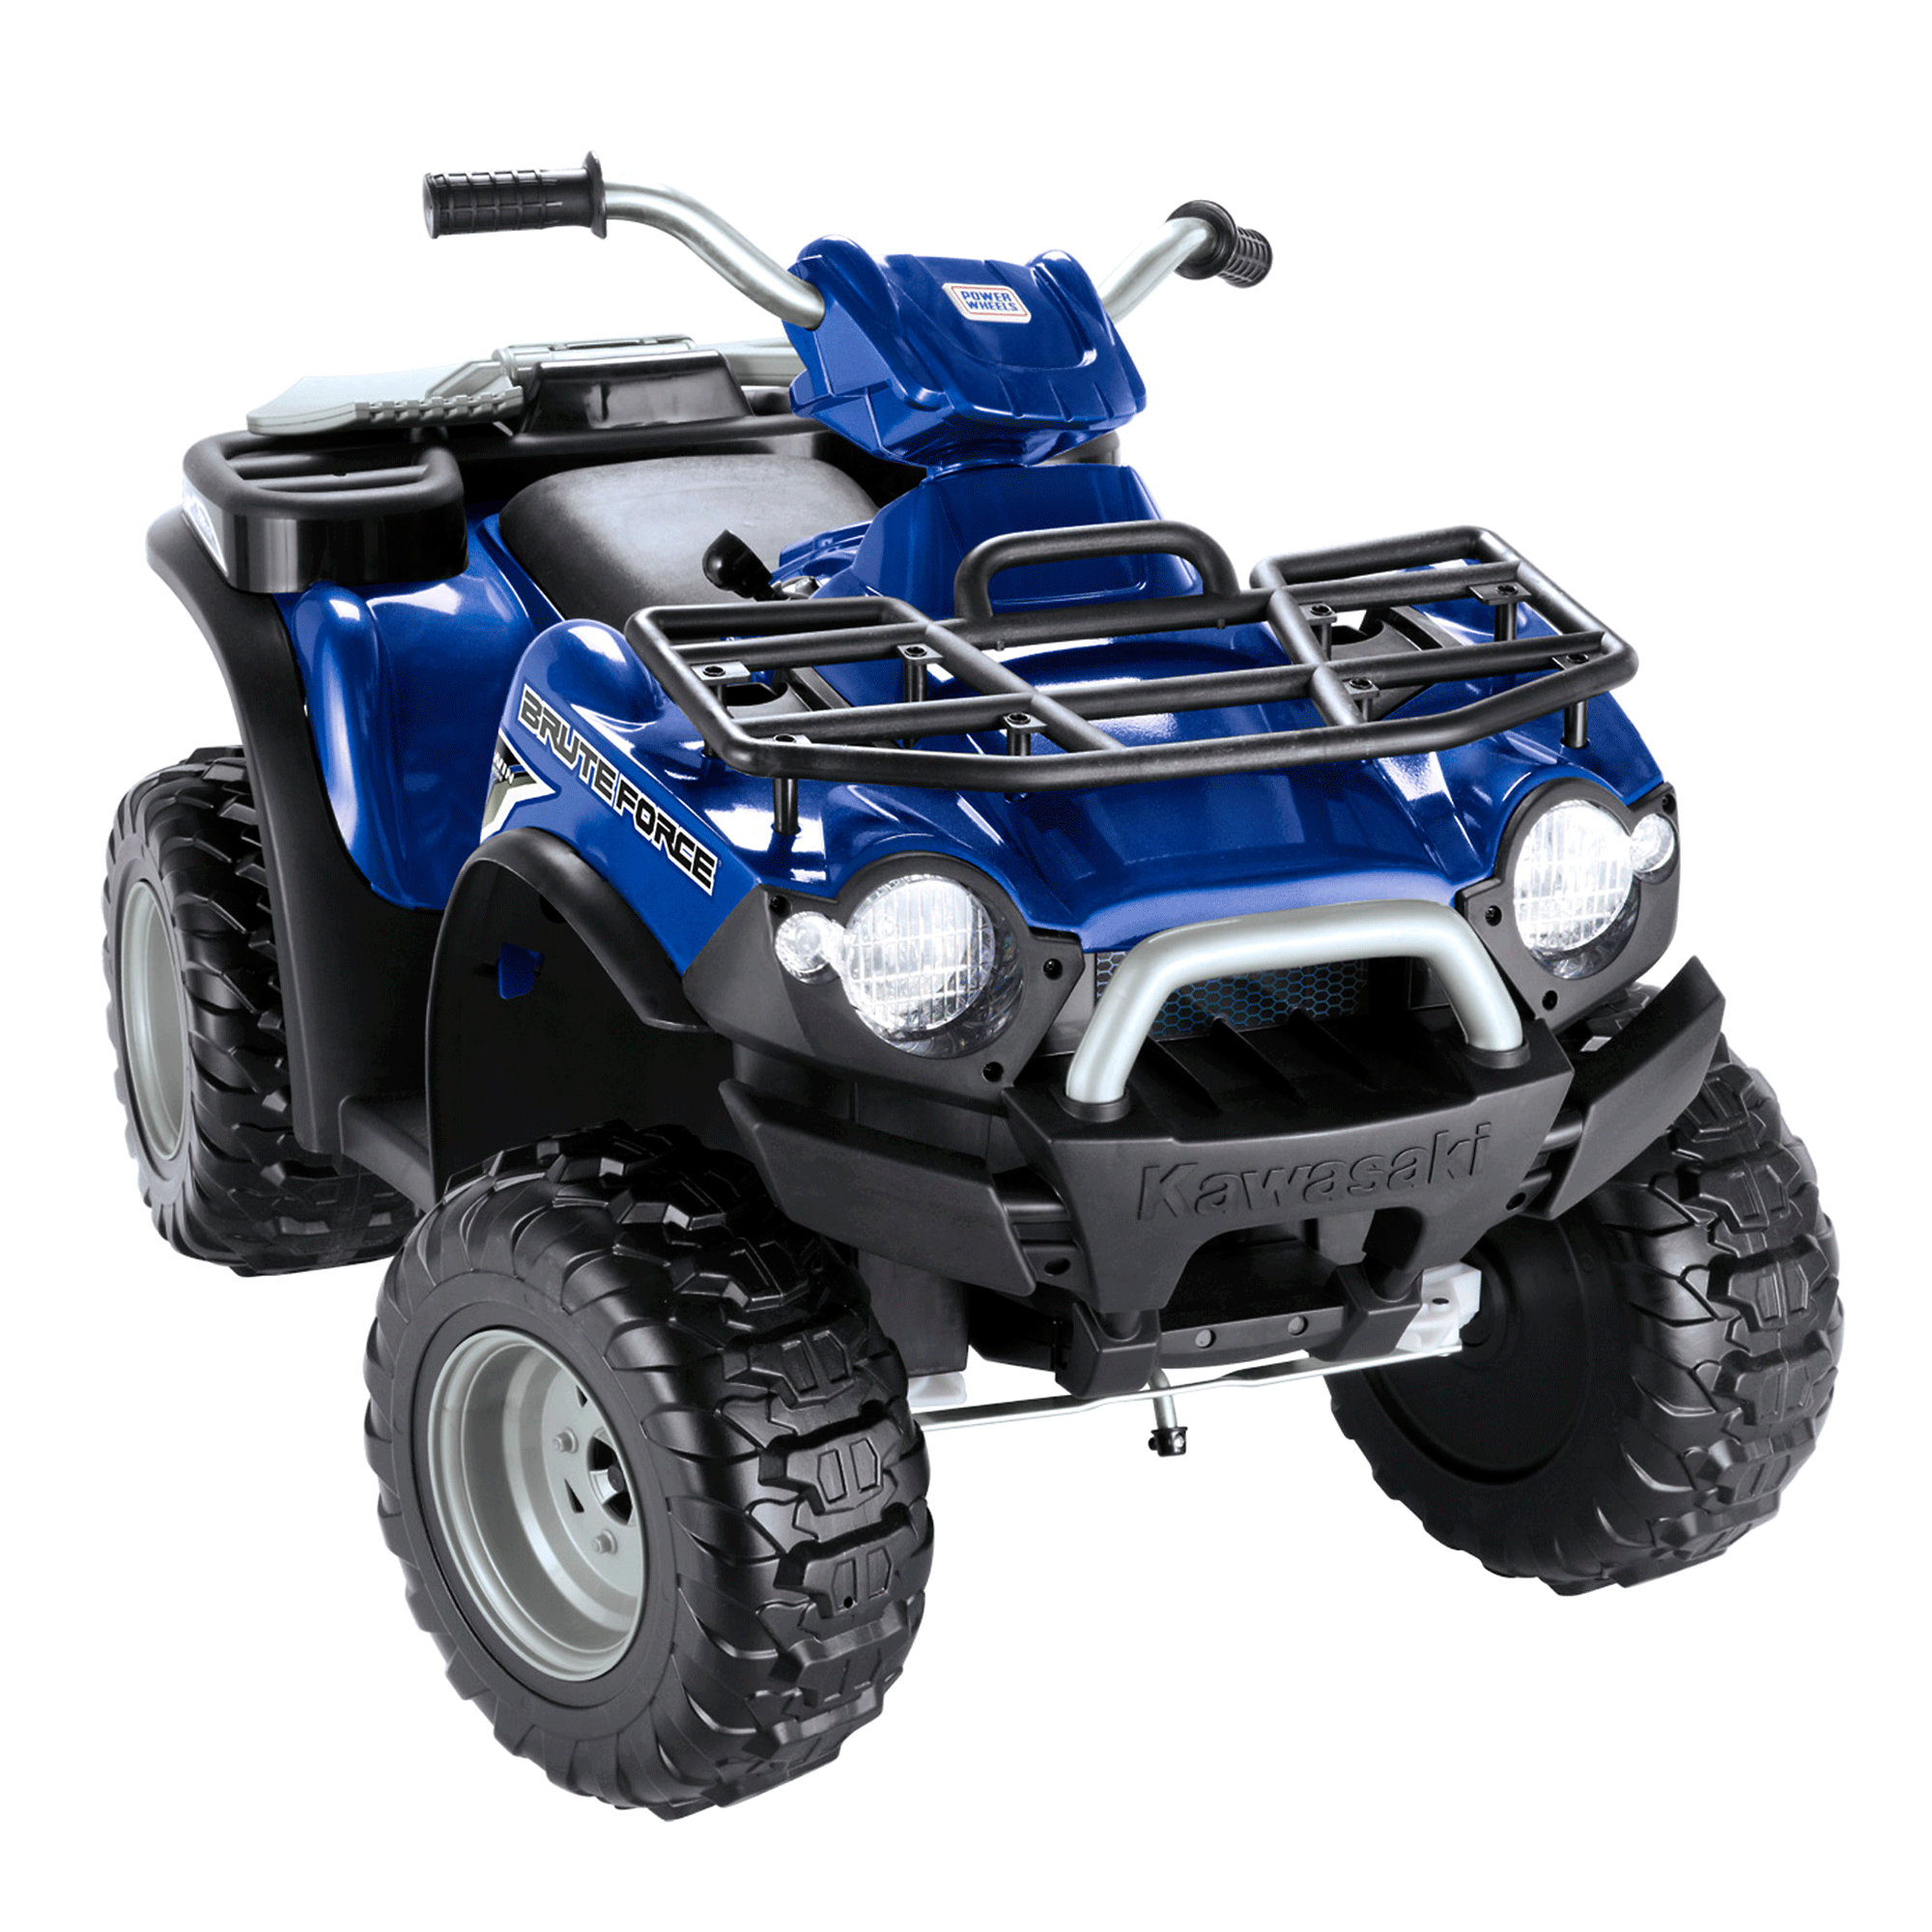 hight resolution of fisher price power wheels kawasaki brute force atv battery powered riding toy walmart com